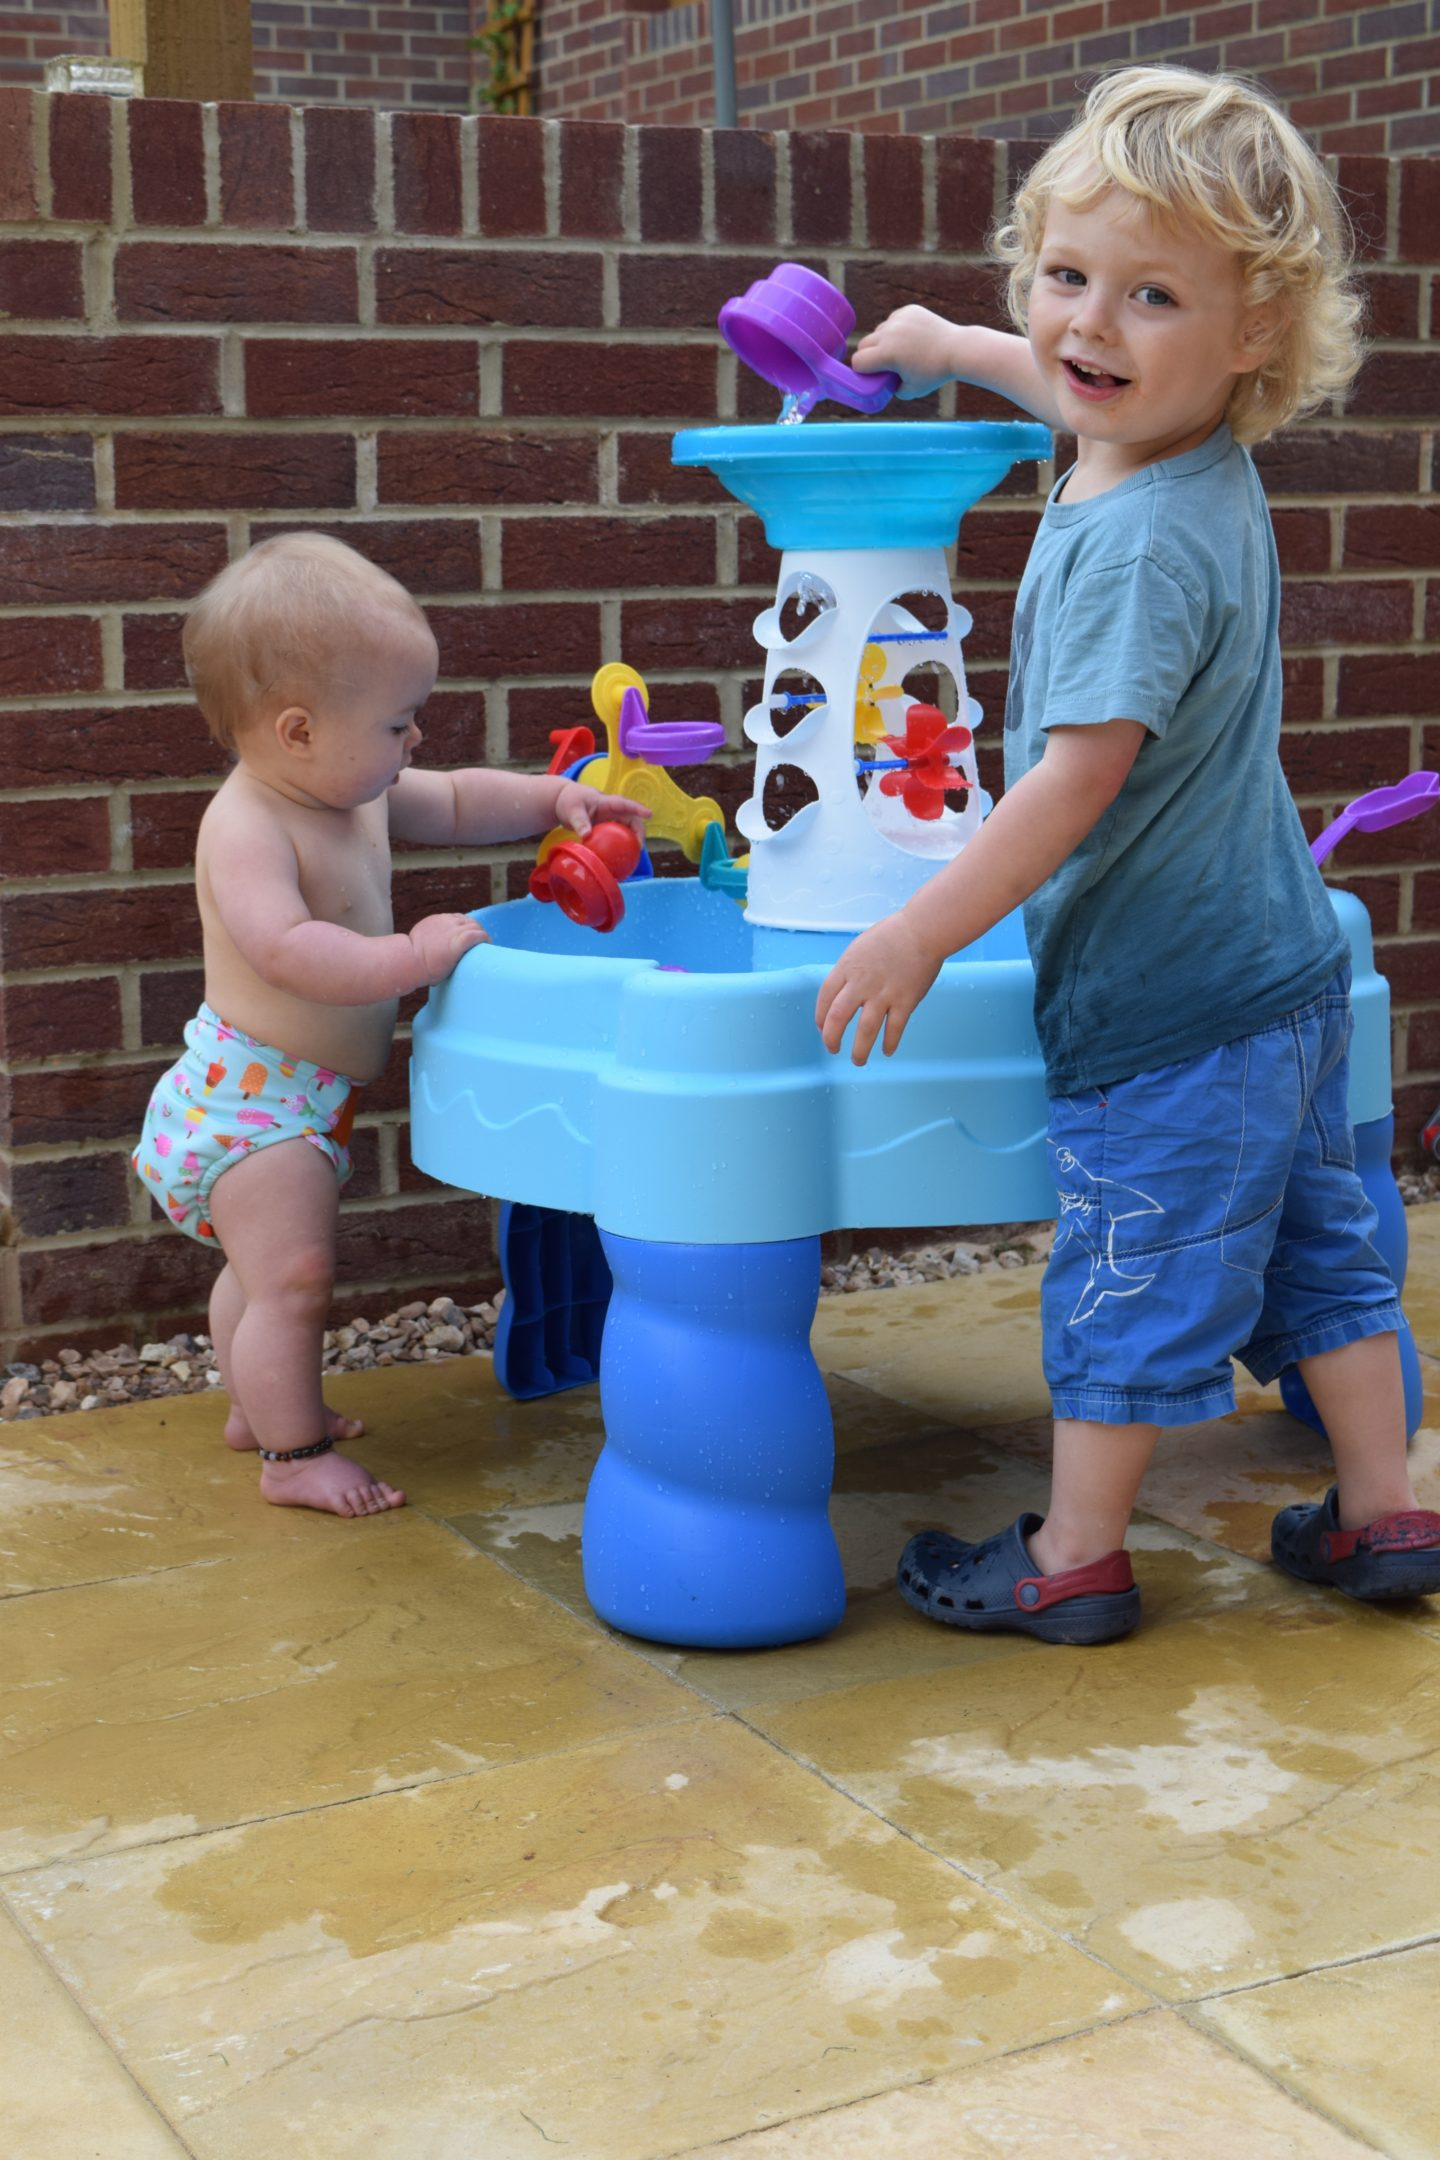 Review: Little Tikes Spinning Seas water table